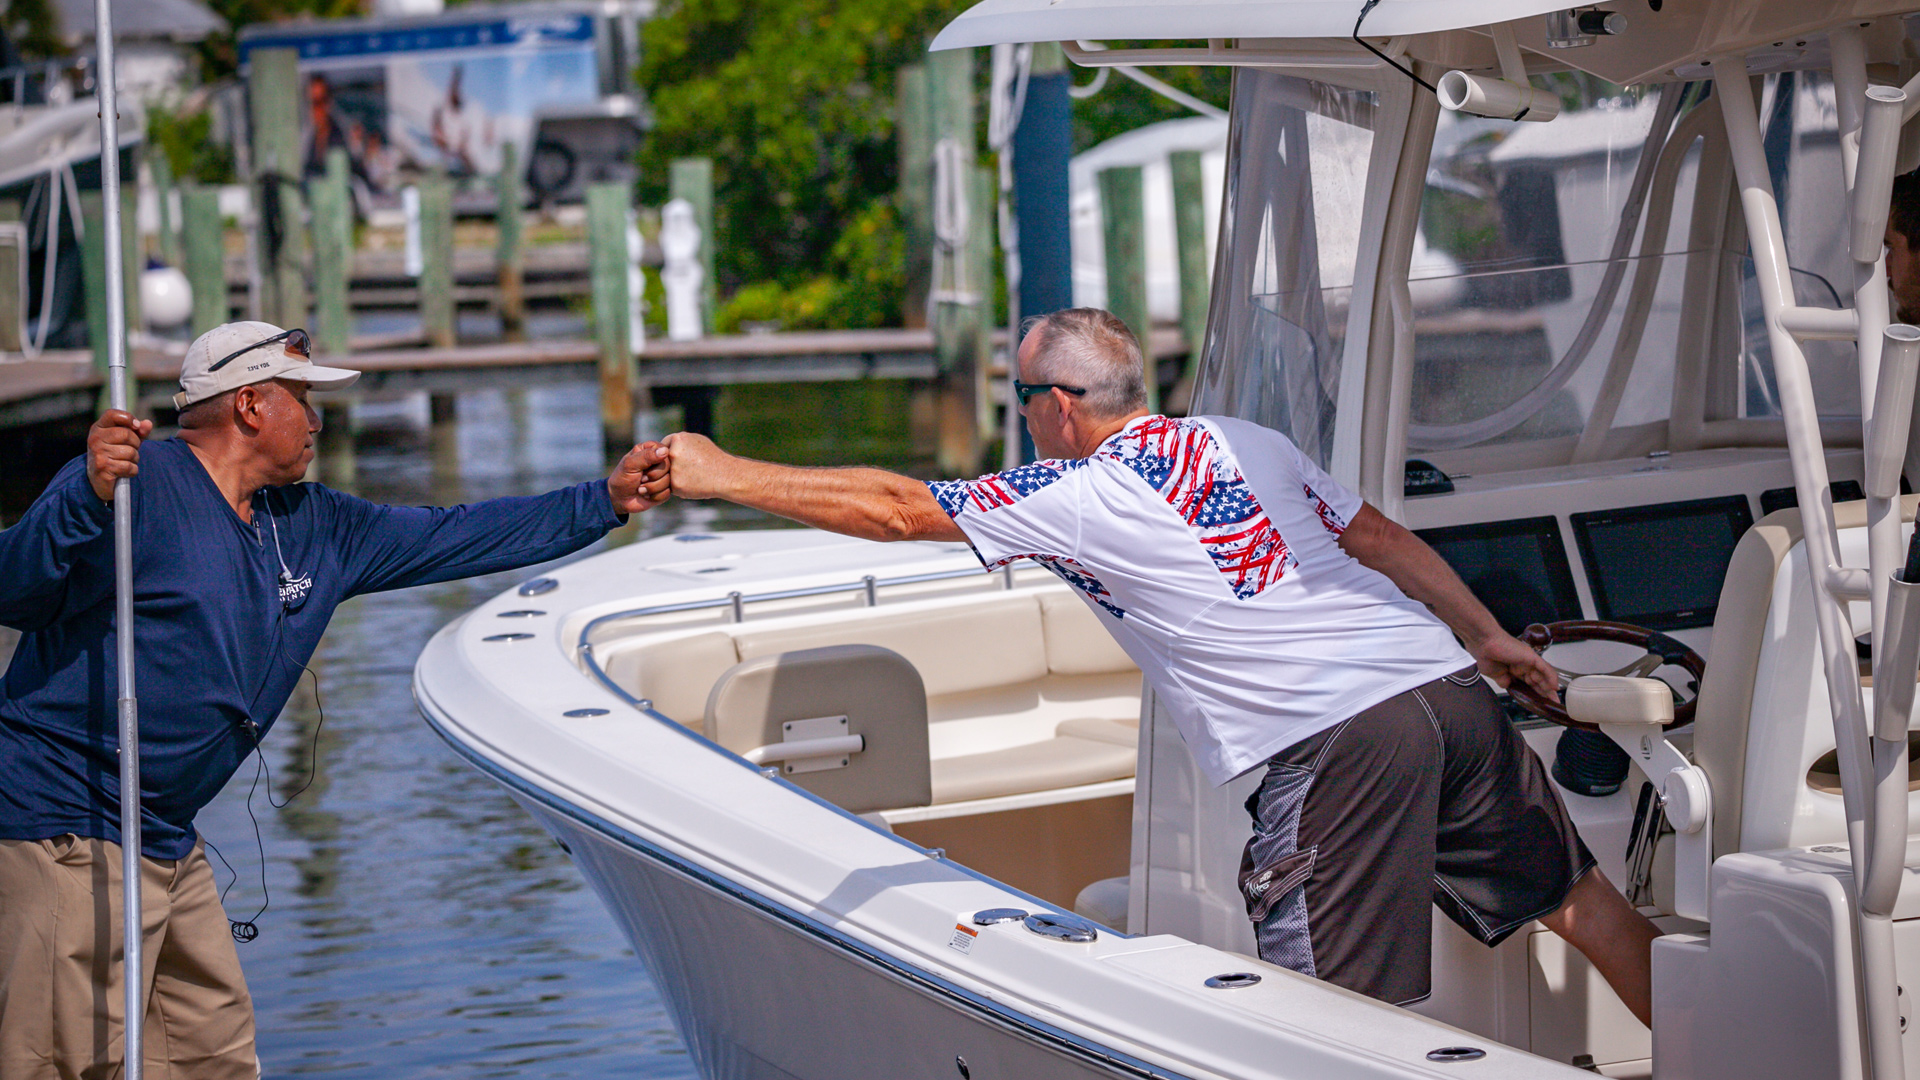 Riverwatch Marina Crew Member with Boater